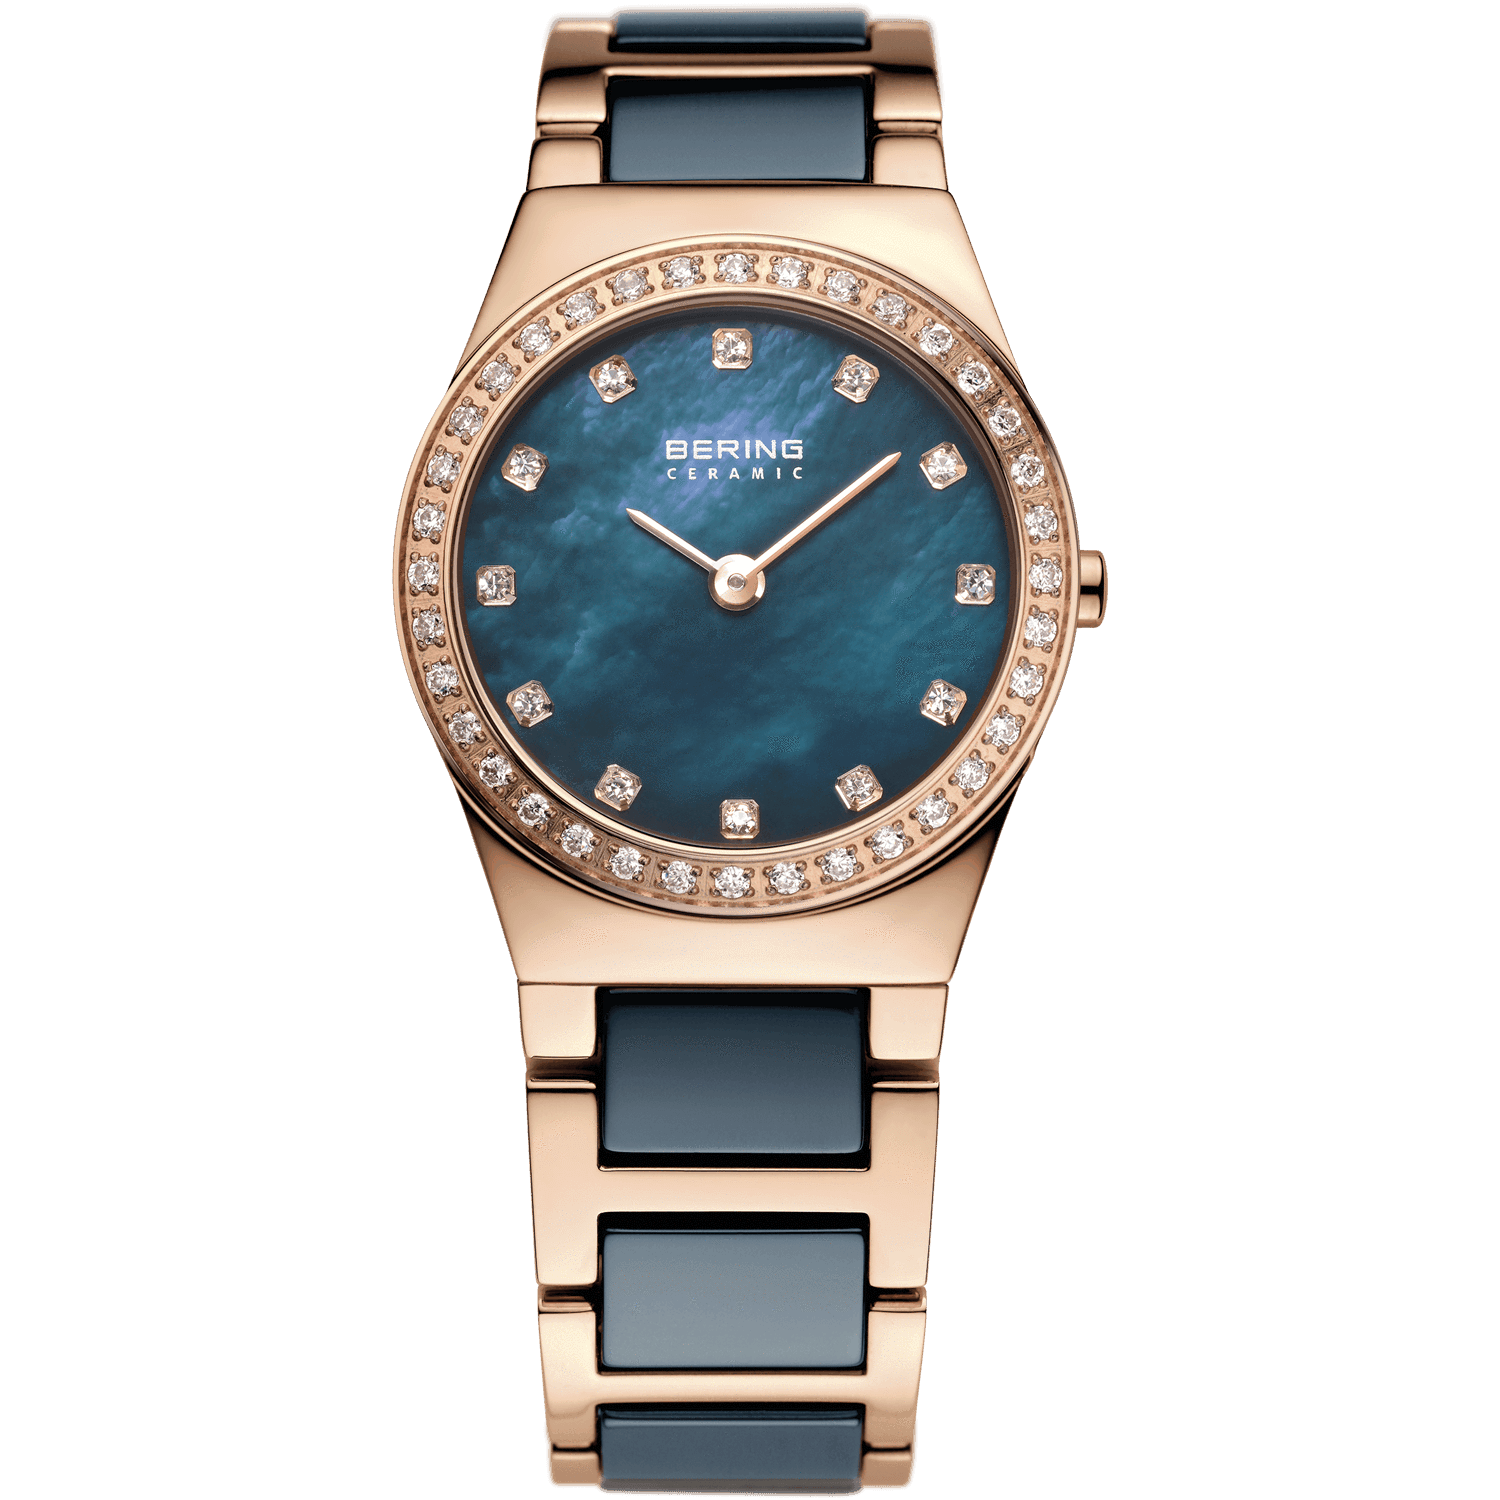 Bering Ceramic 32426-767 Blue 26 mm Women's Watch - COCOMI